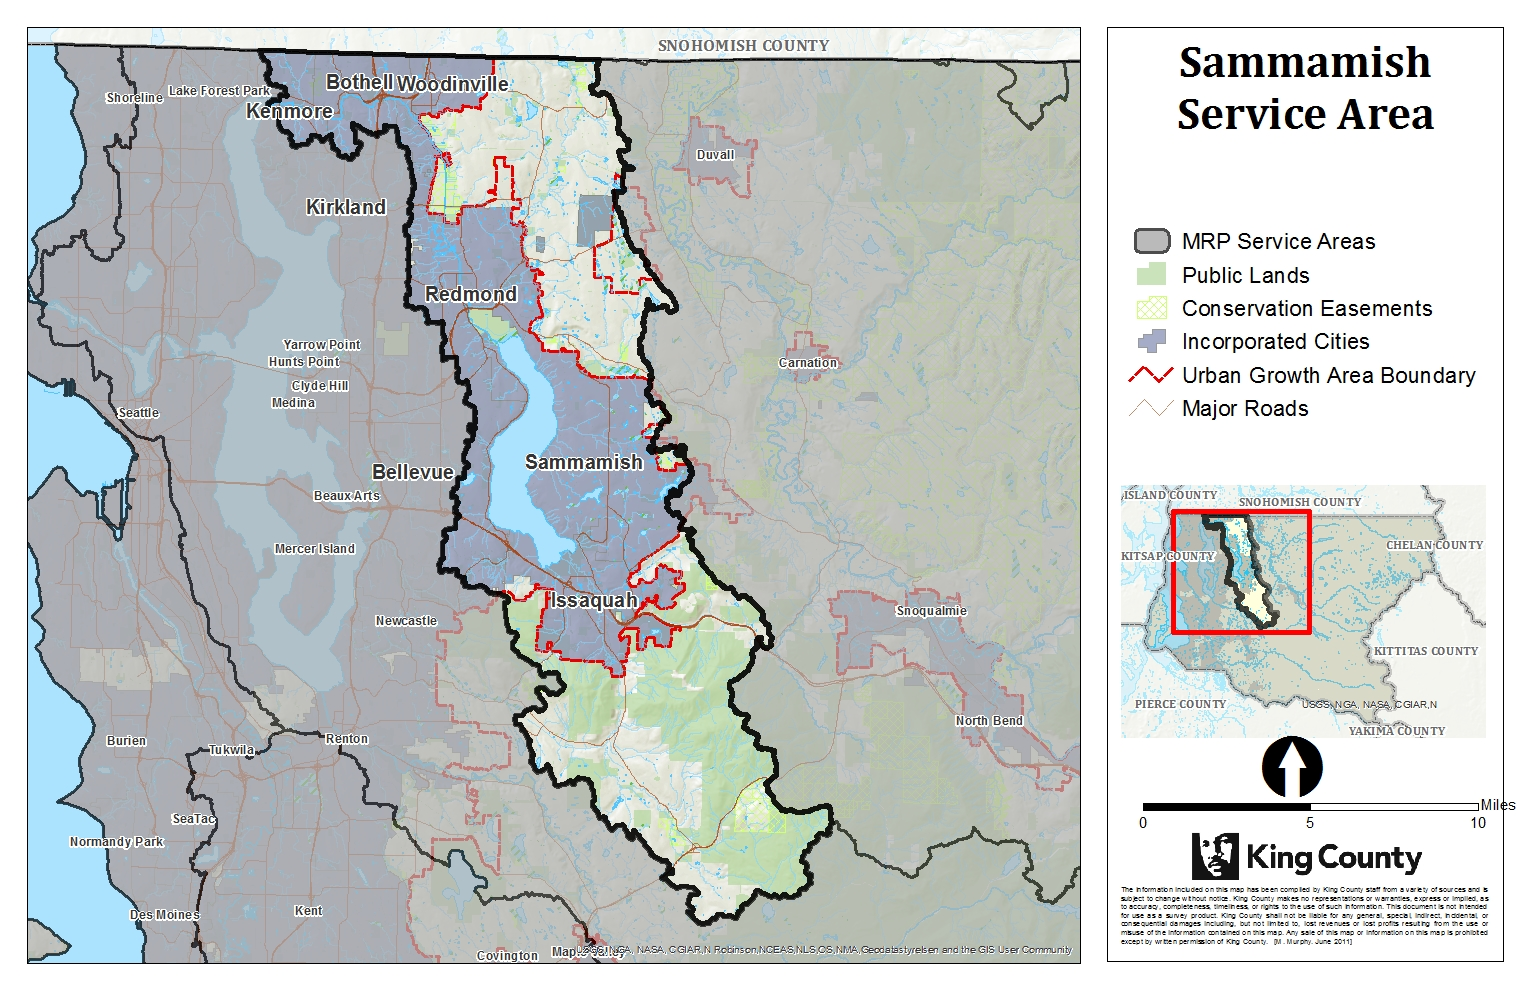 Map of Sammamish Service Area for King County Mitigation Reserves Program